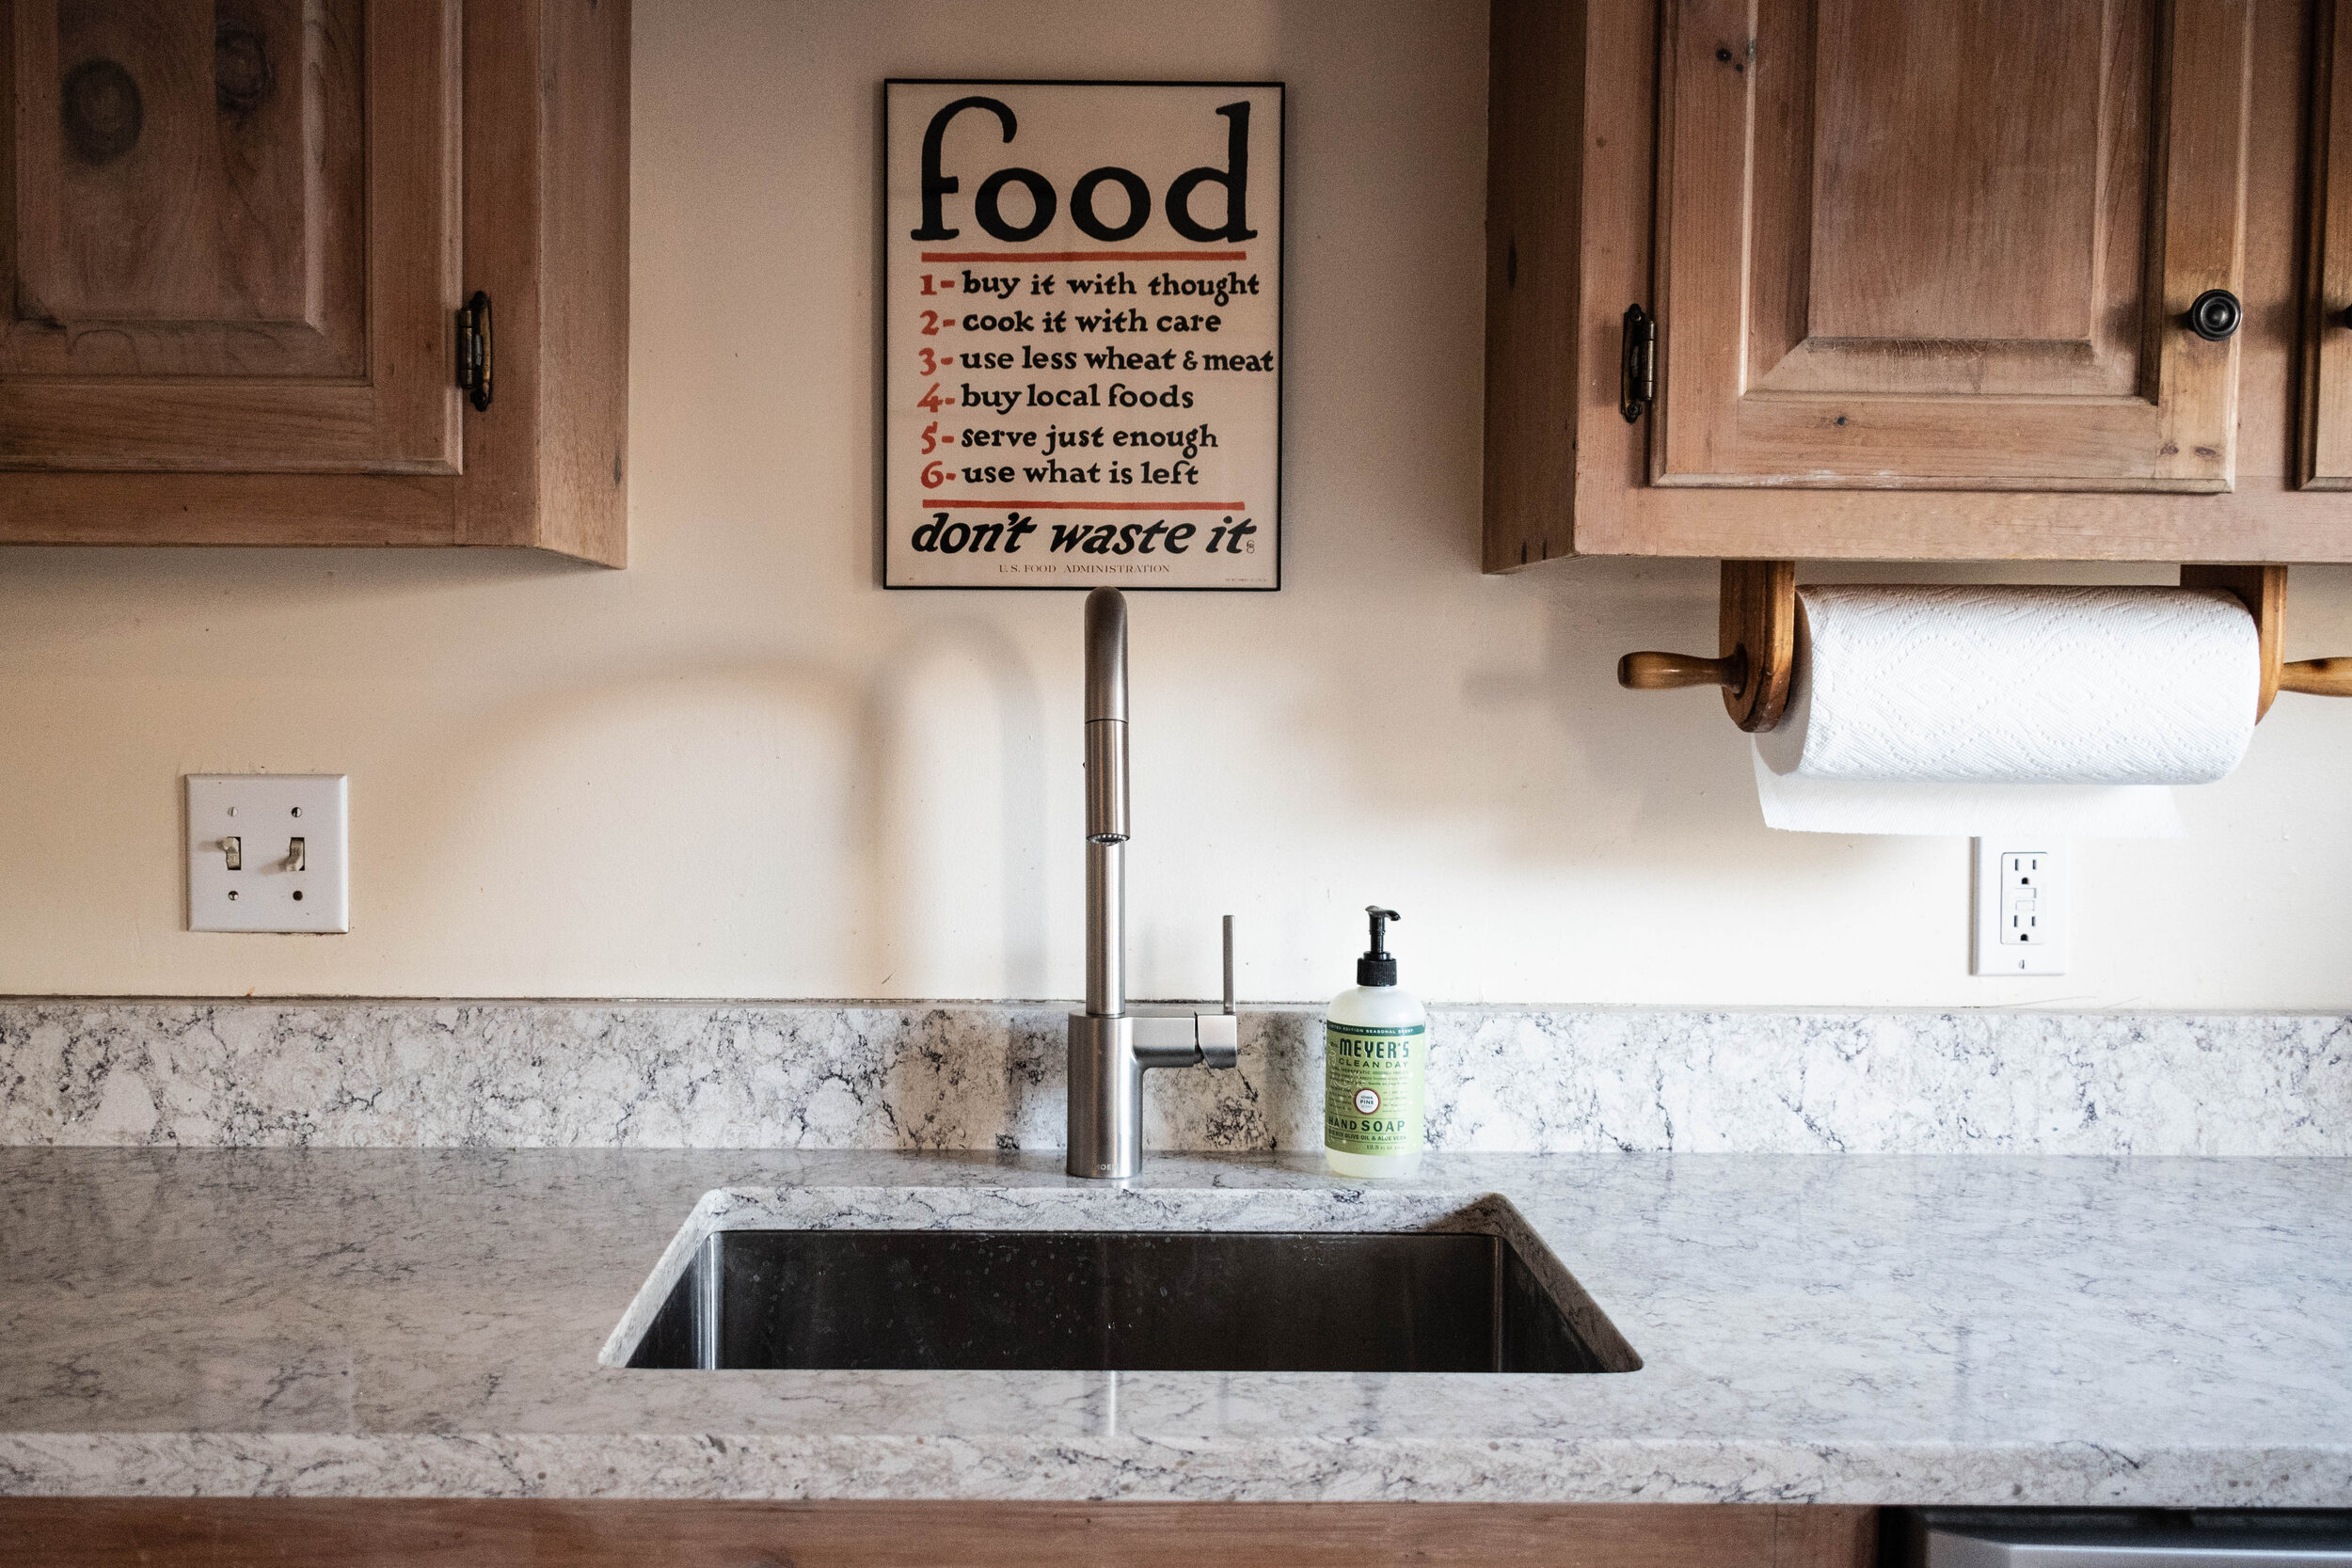 Material: LG Viatera Aria  Thickness, Finish & Stone Type: 3CM Polished Quartz  Edge: Pencil  Sink: Client's Sink: Under-Mount